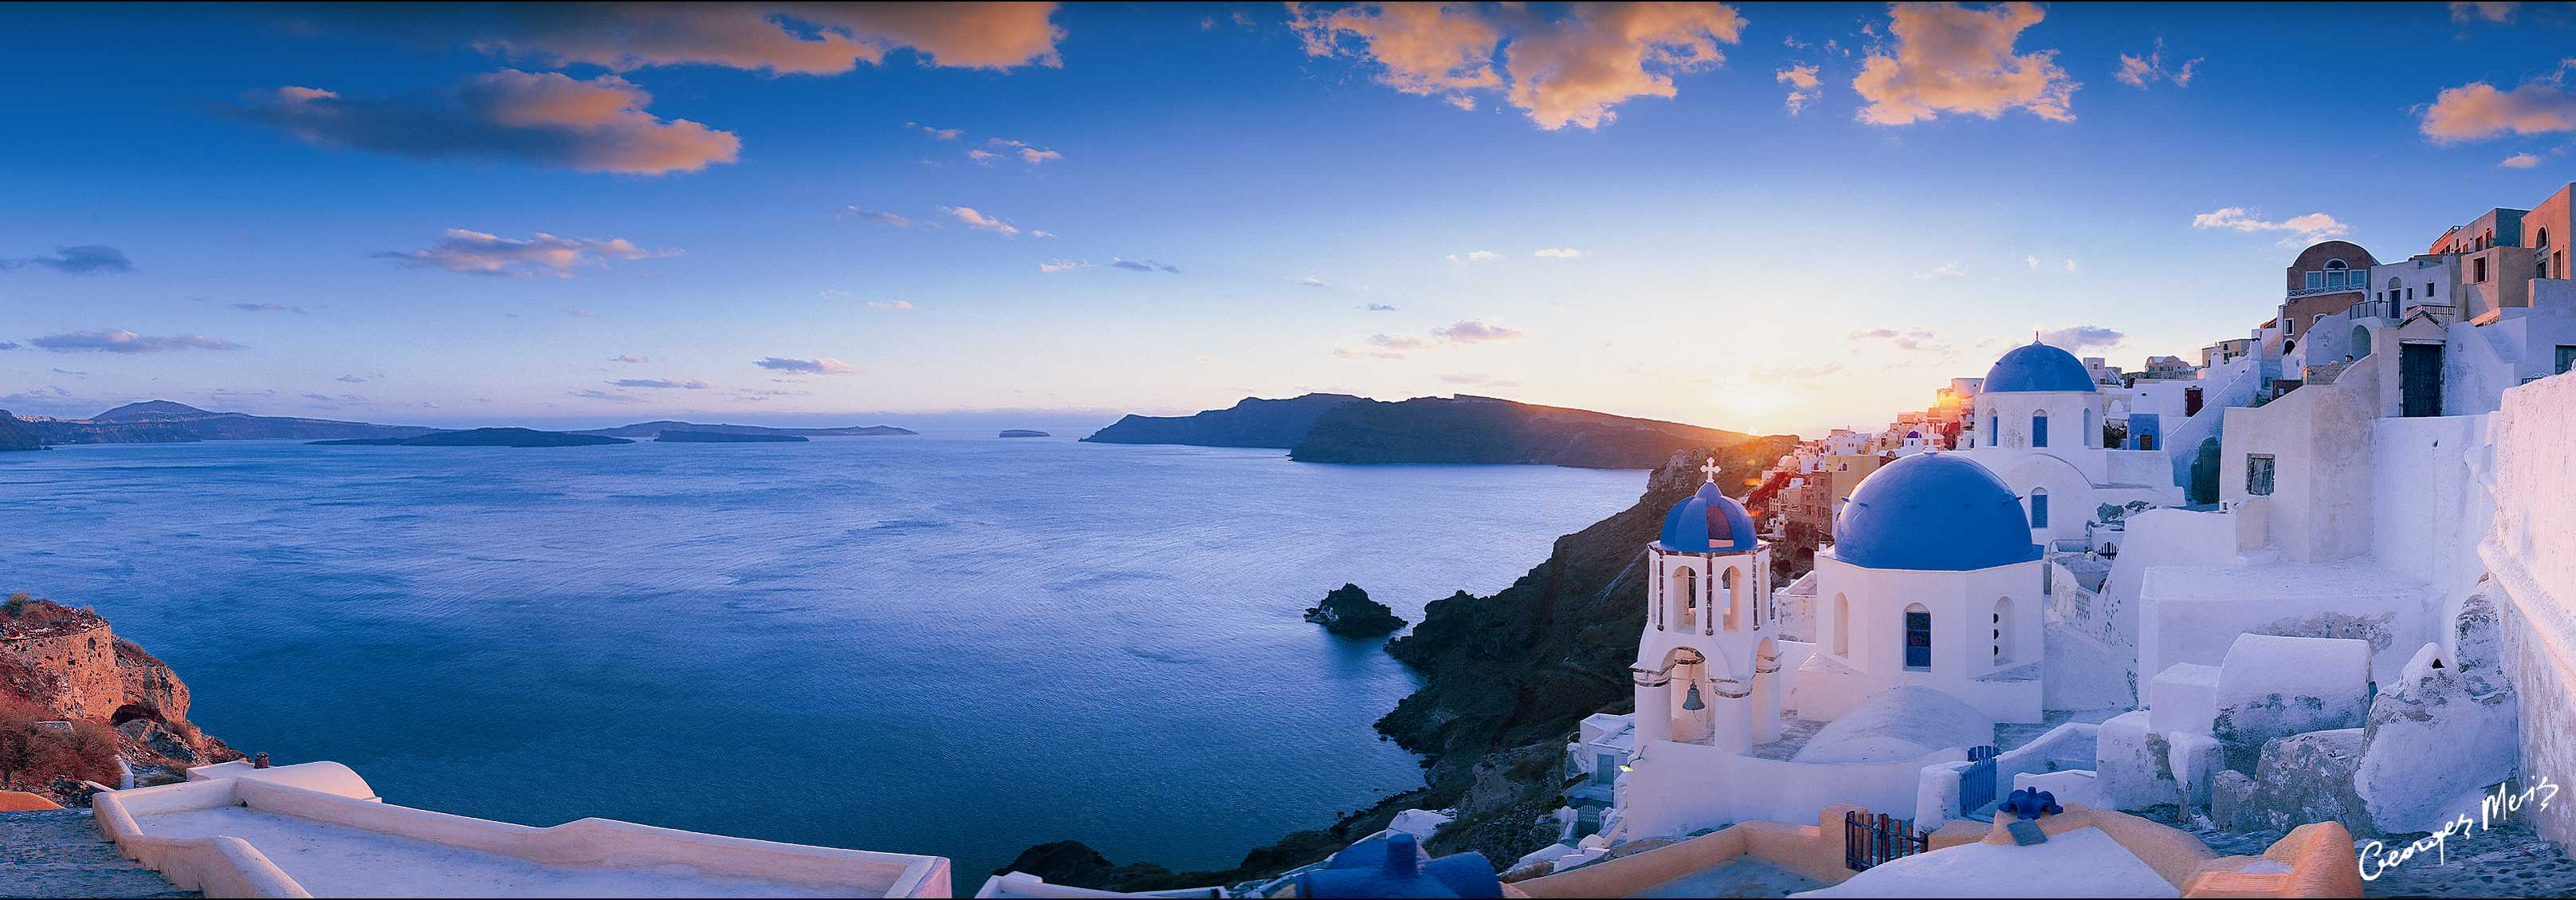 Santorini Greece View Panorama Sea Ships Desktop Background 3232x1129